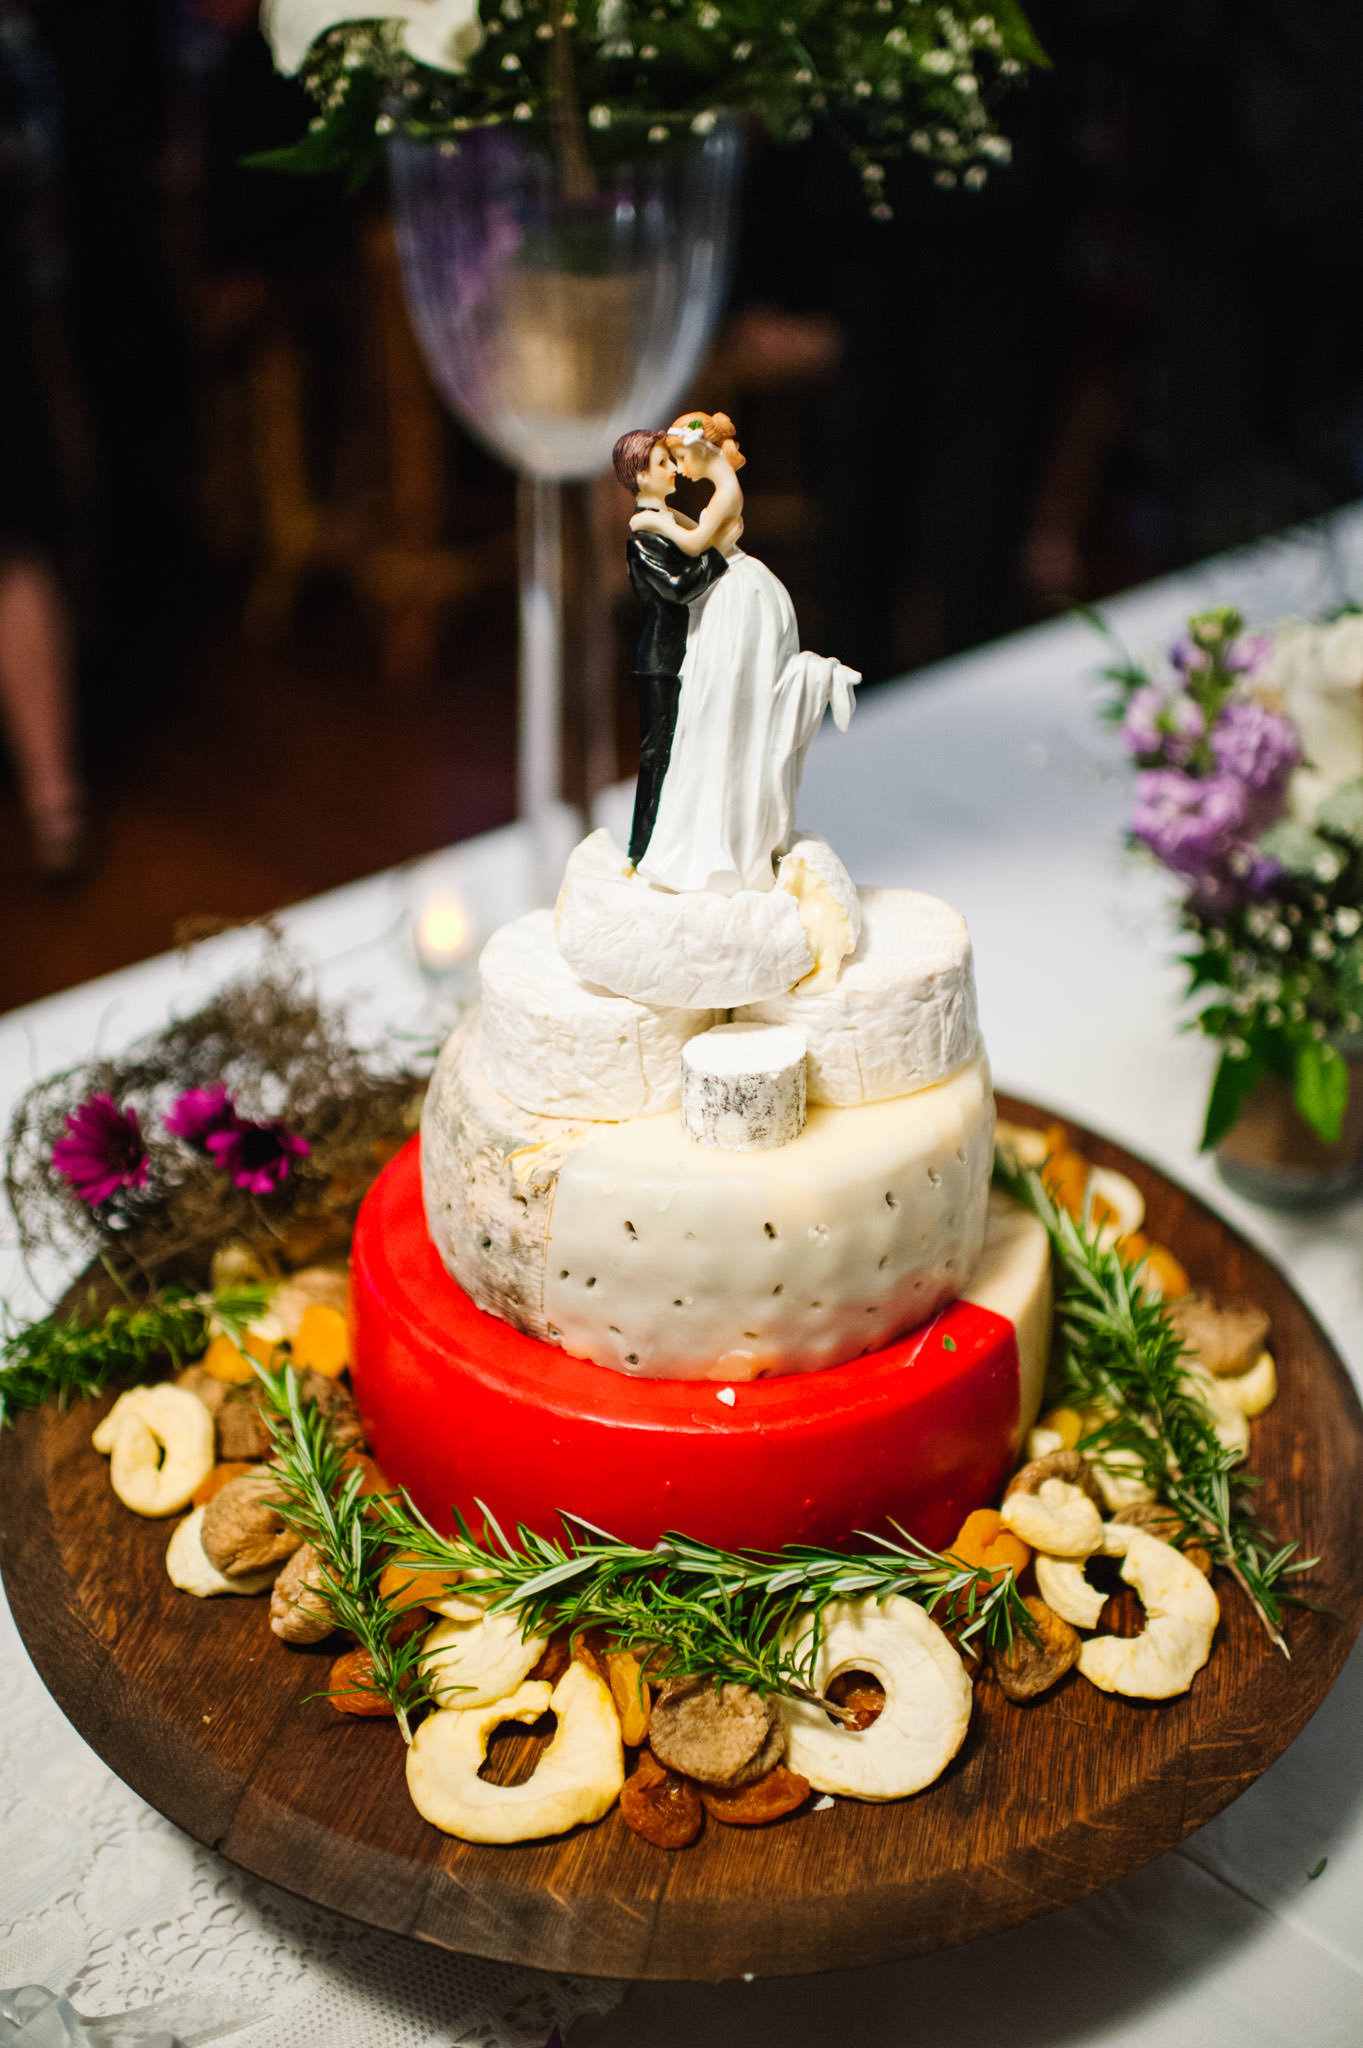 Photo of cheese cake with bride and groom topper